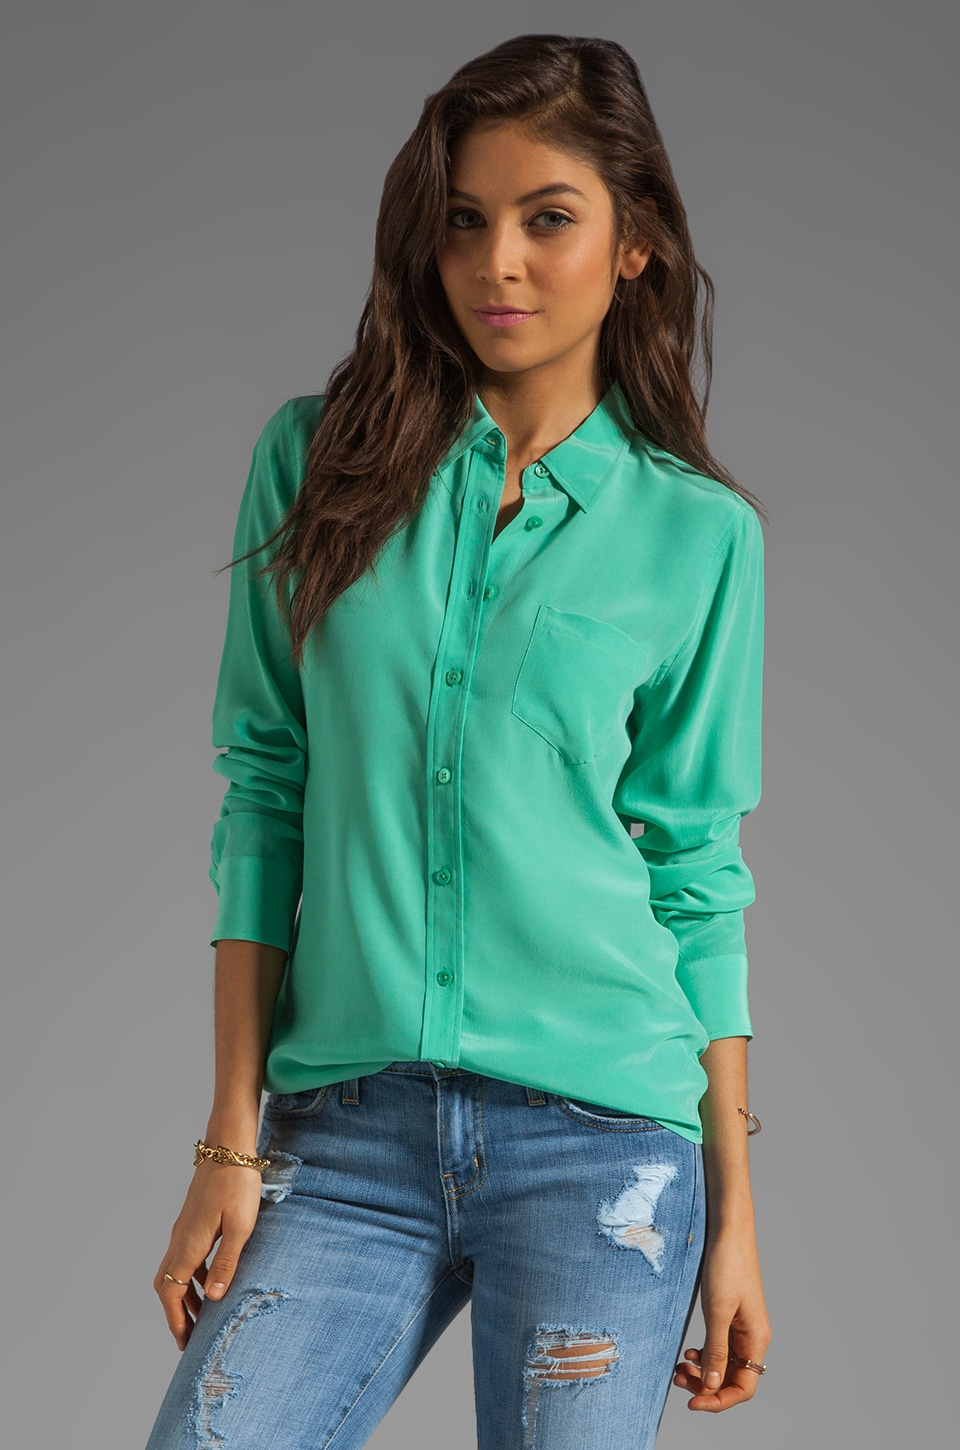 Equipment Brett Vintage Wash Blouse in Aqua Marine